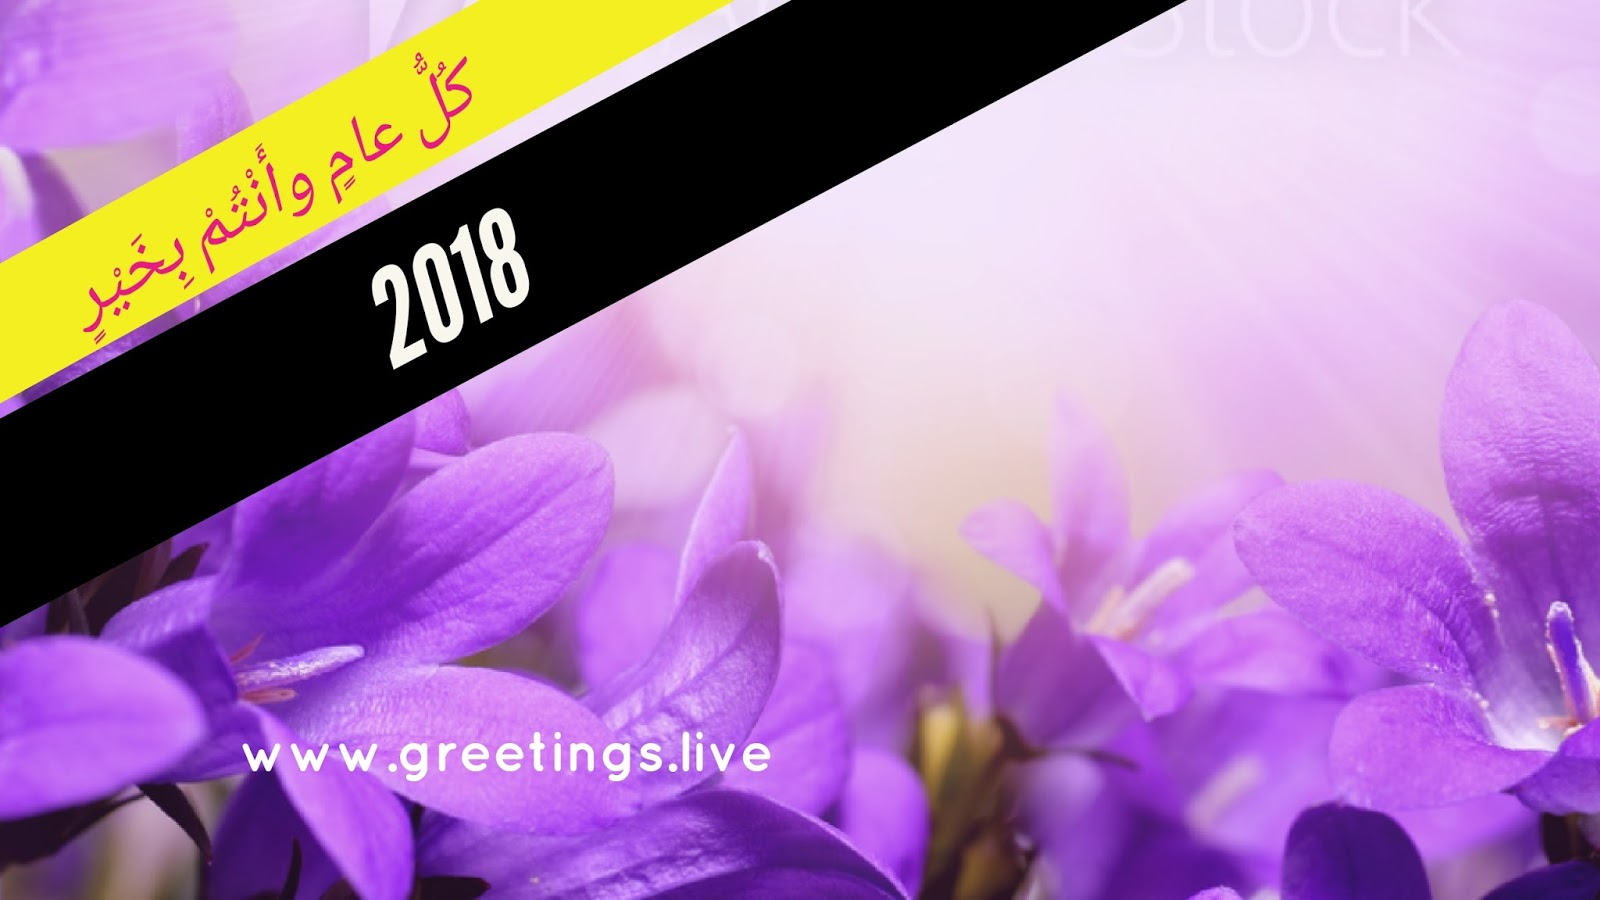 Greetingsve hd images love smile birthday wishes free download arabic greetings on happy new year 2018 kristyandbryce Images